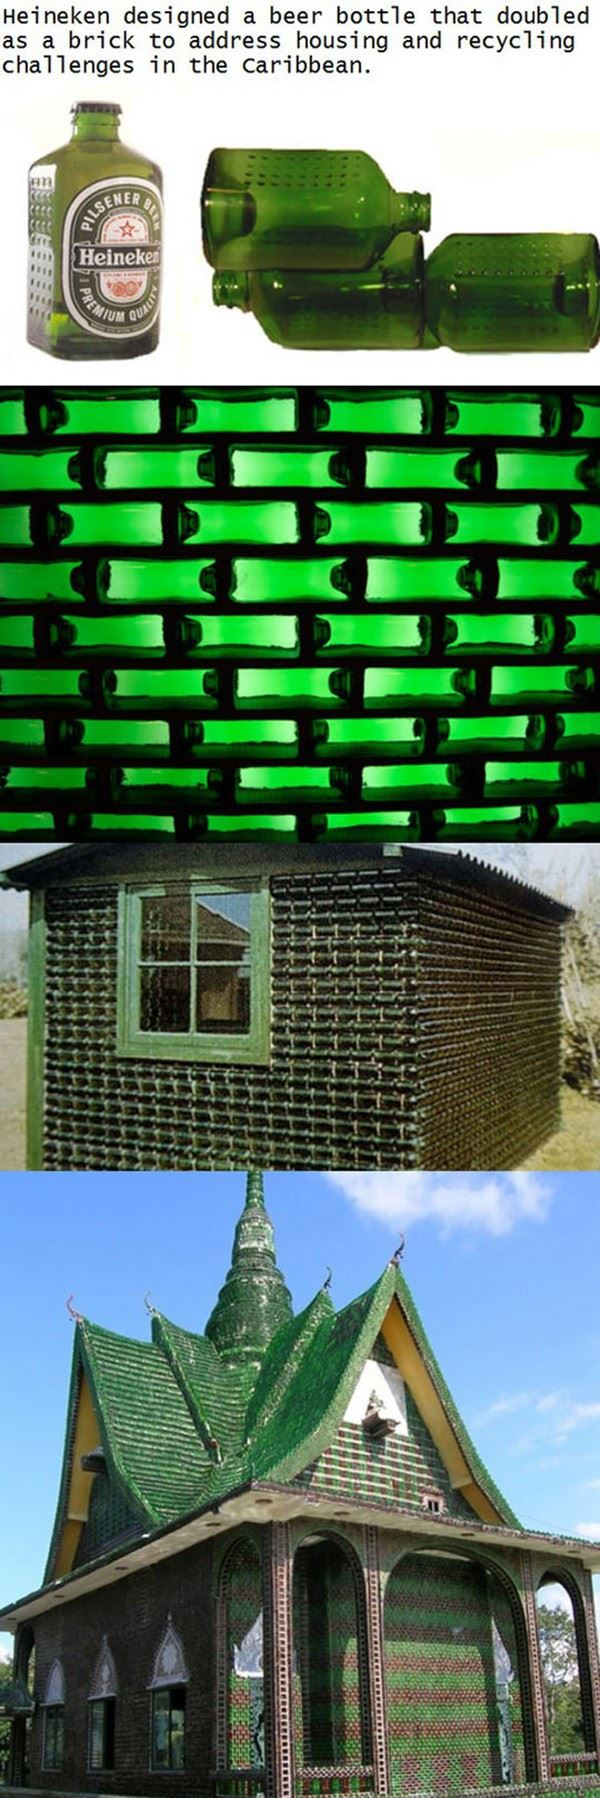 Heineken brick bottles